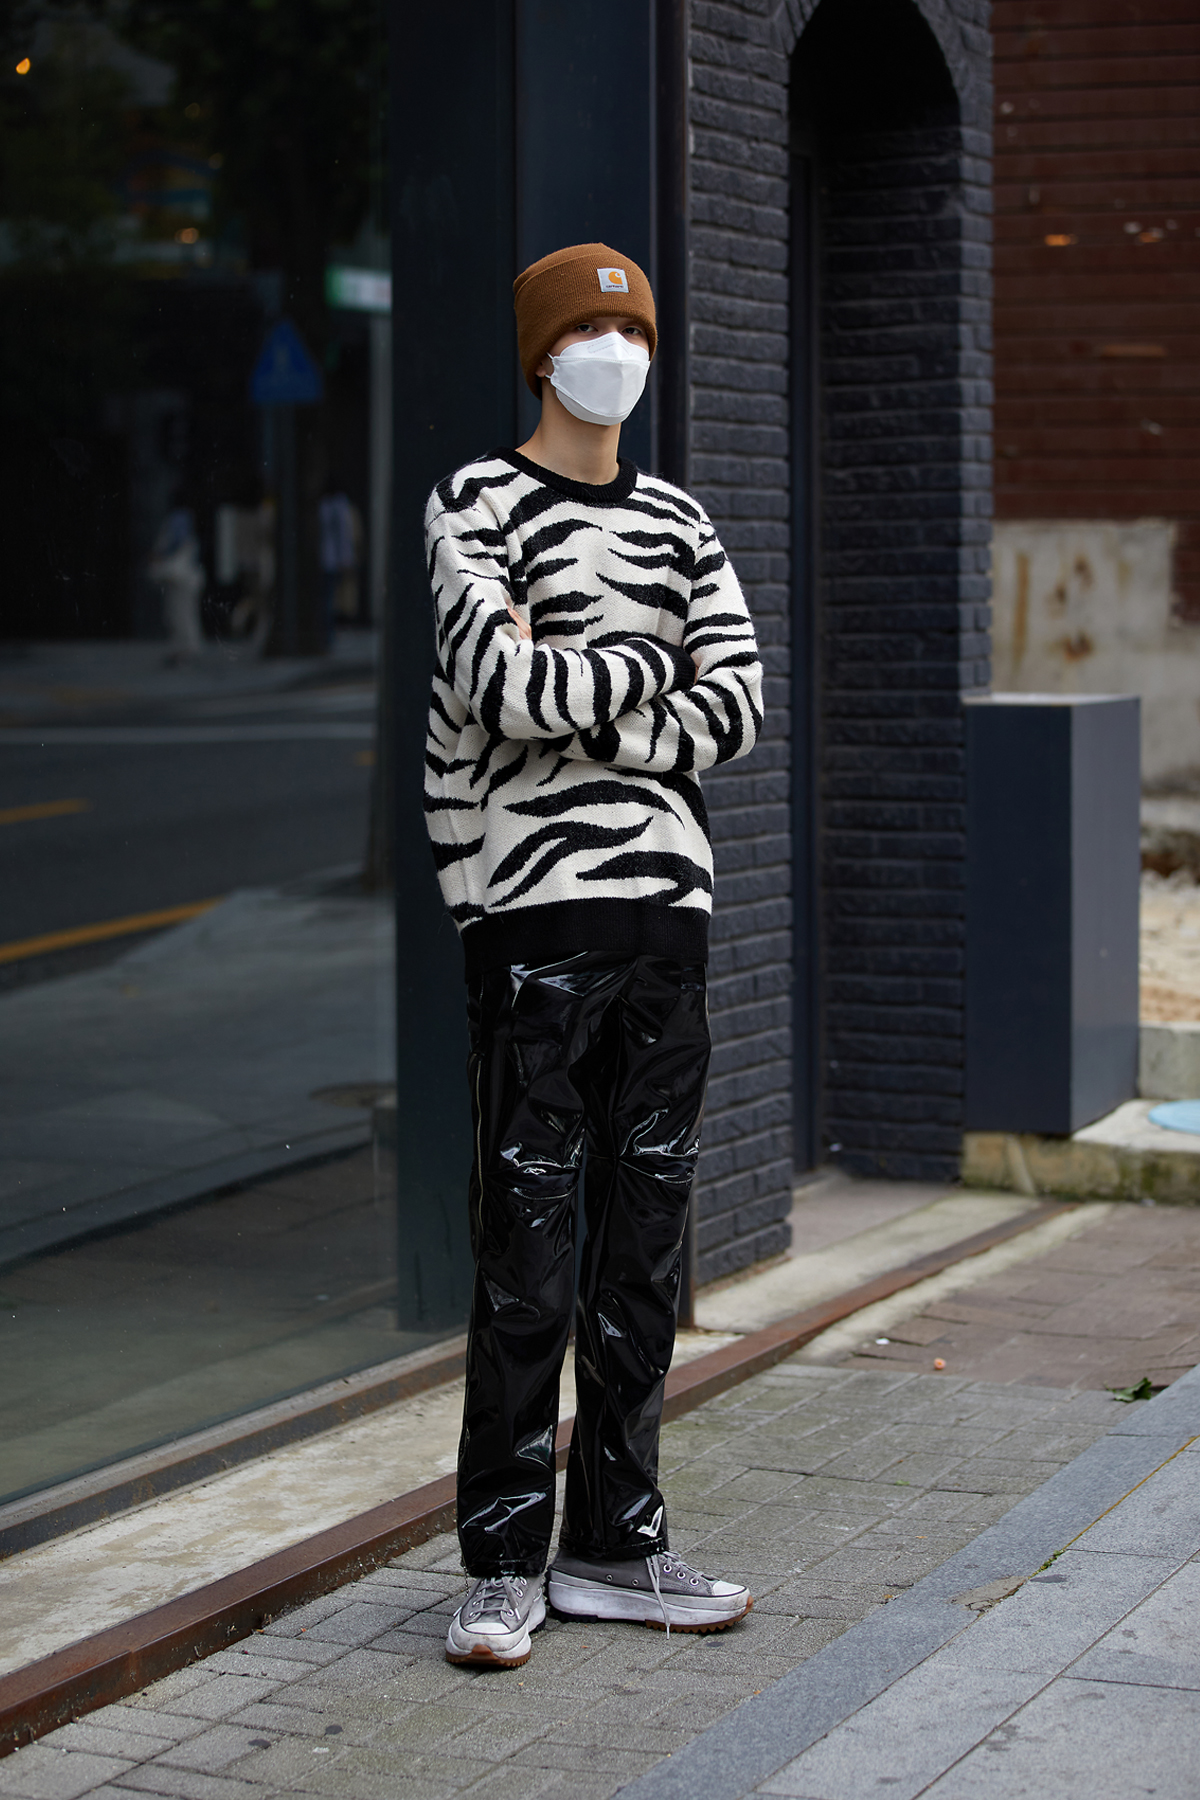 Street Fashion Men's Style in Seoul October 2020